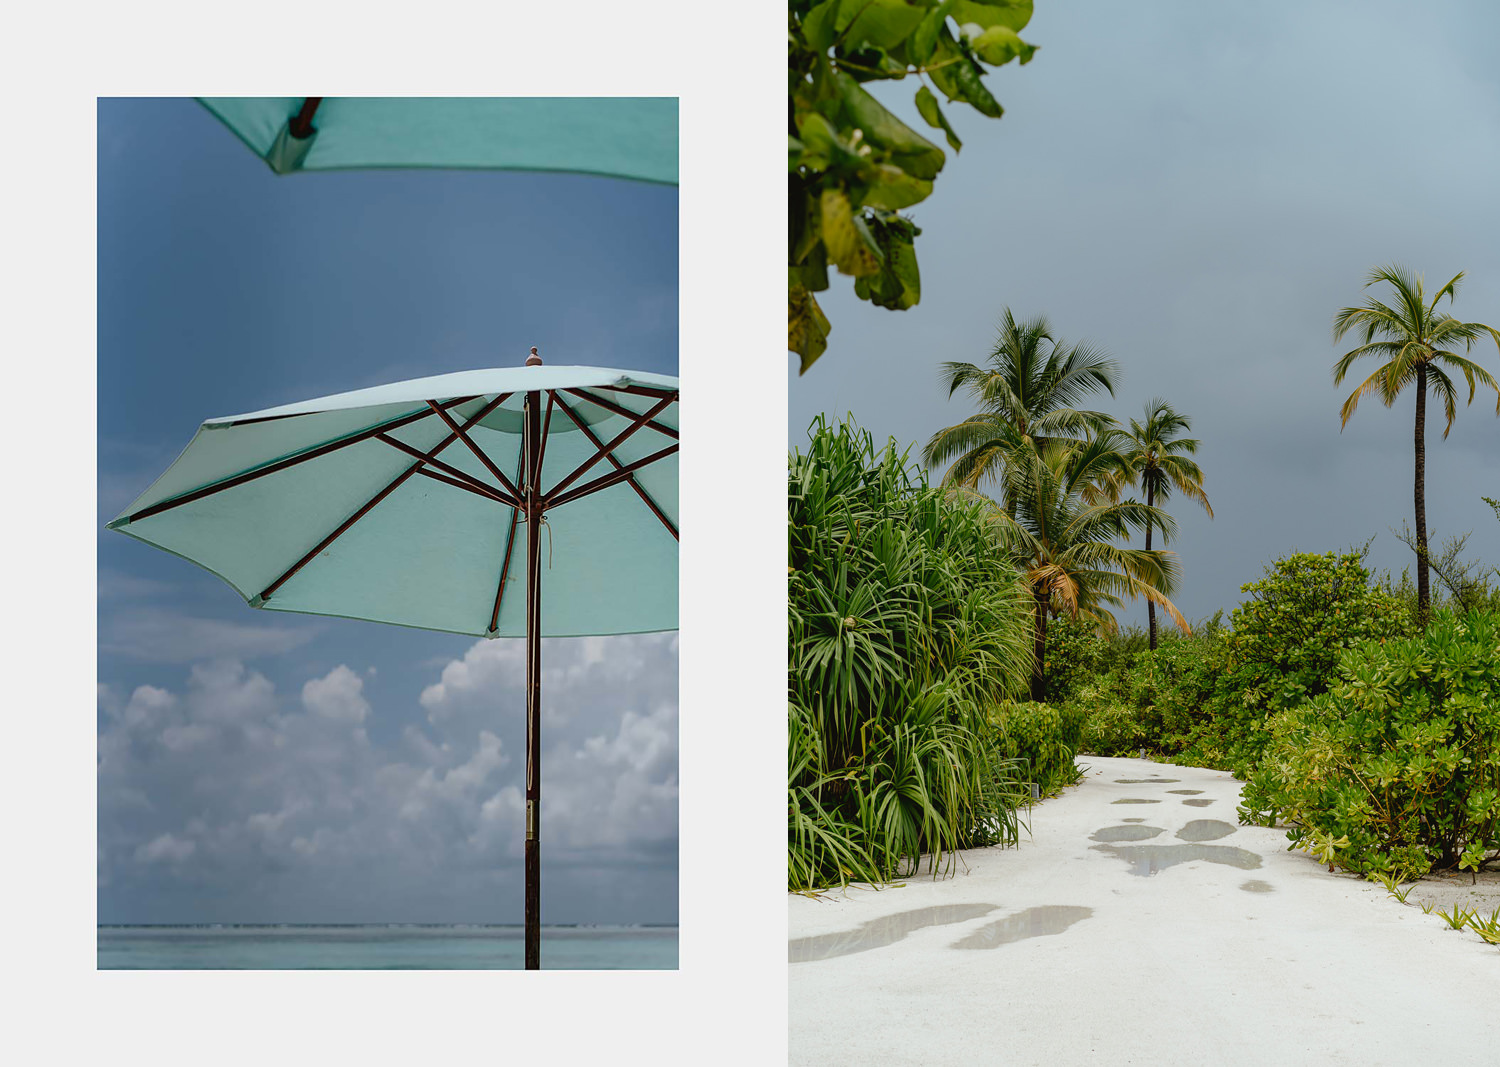 wedding photographer in maldives th anniversary trip what doing rainy day